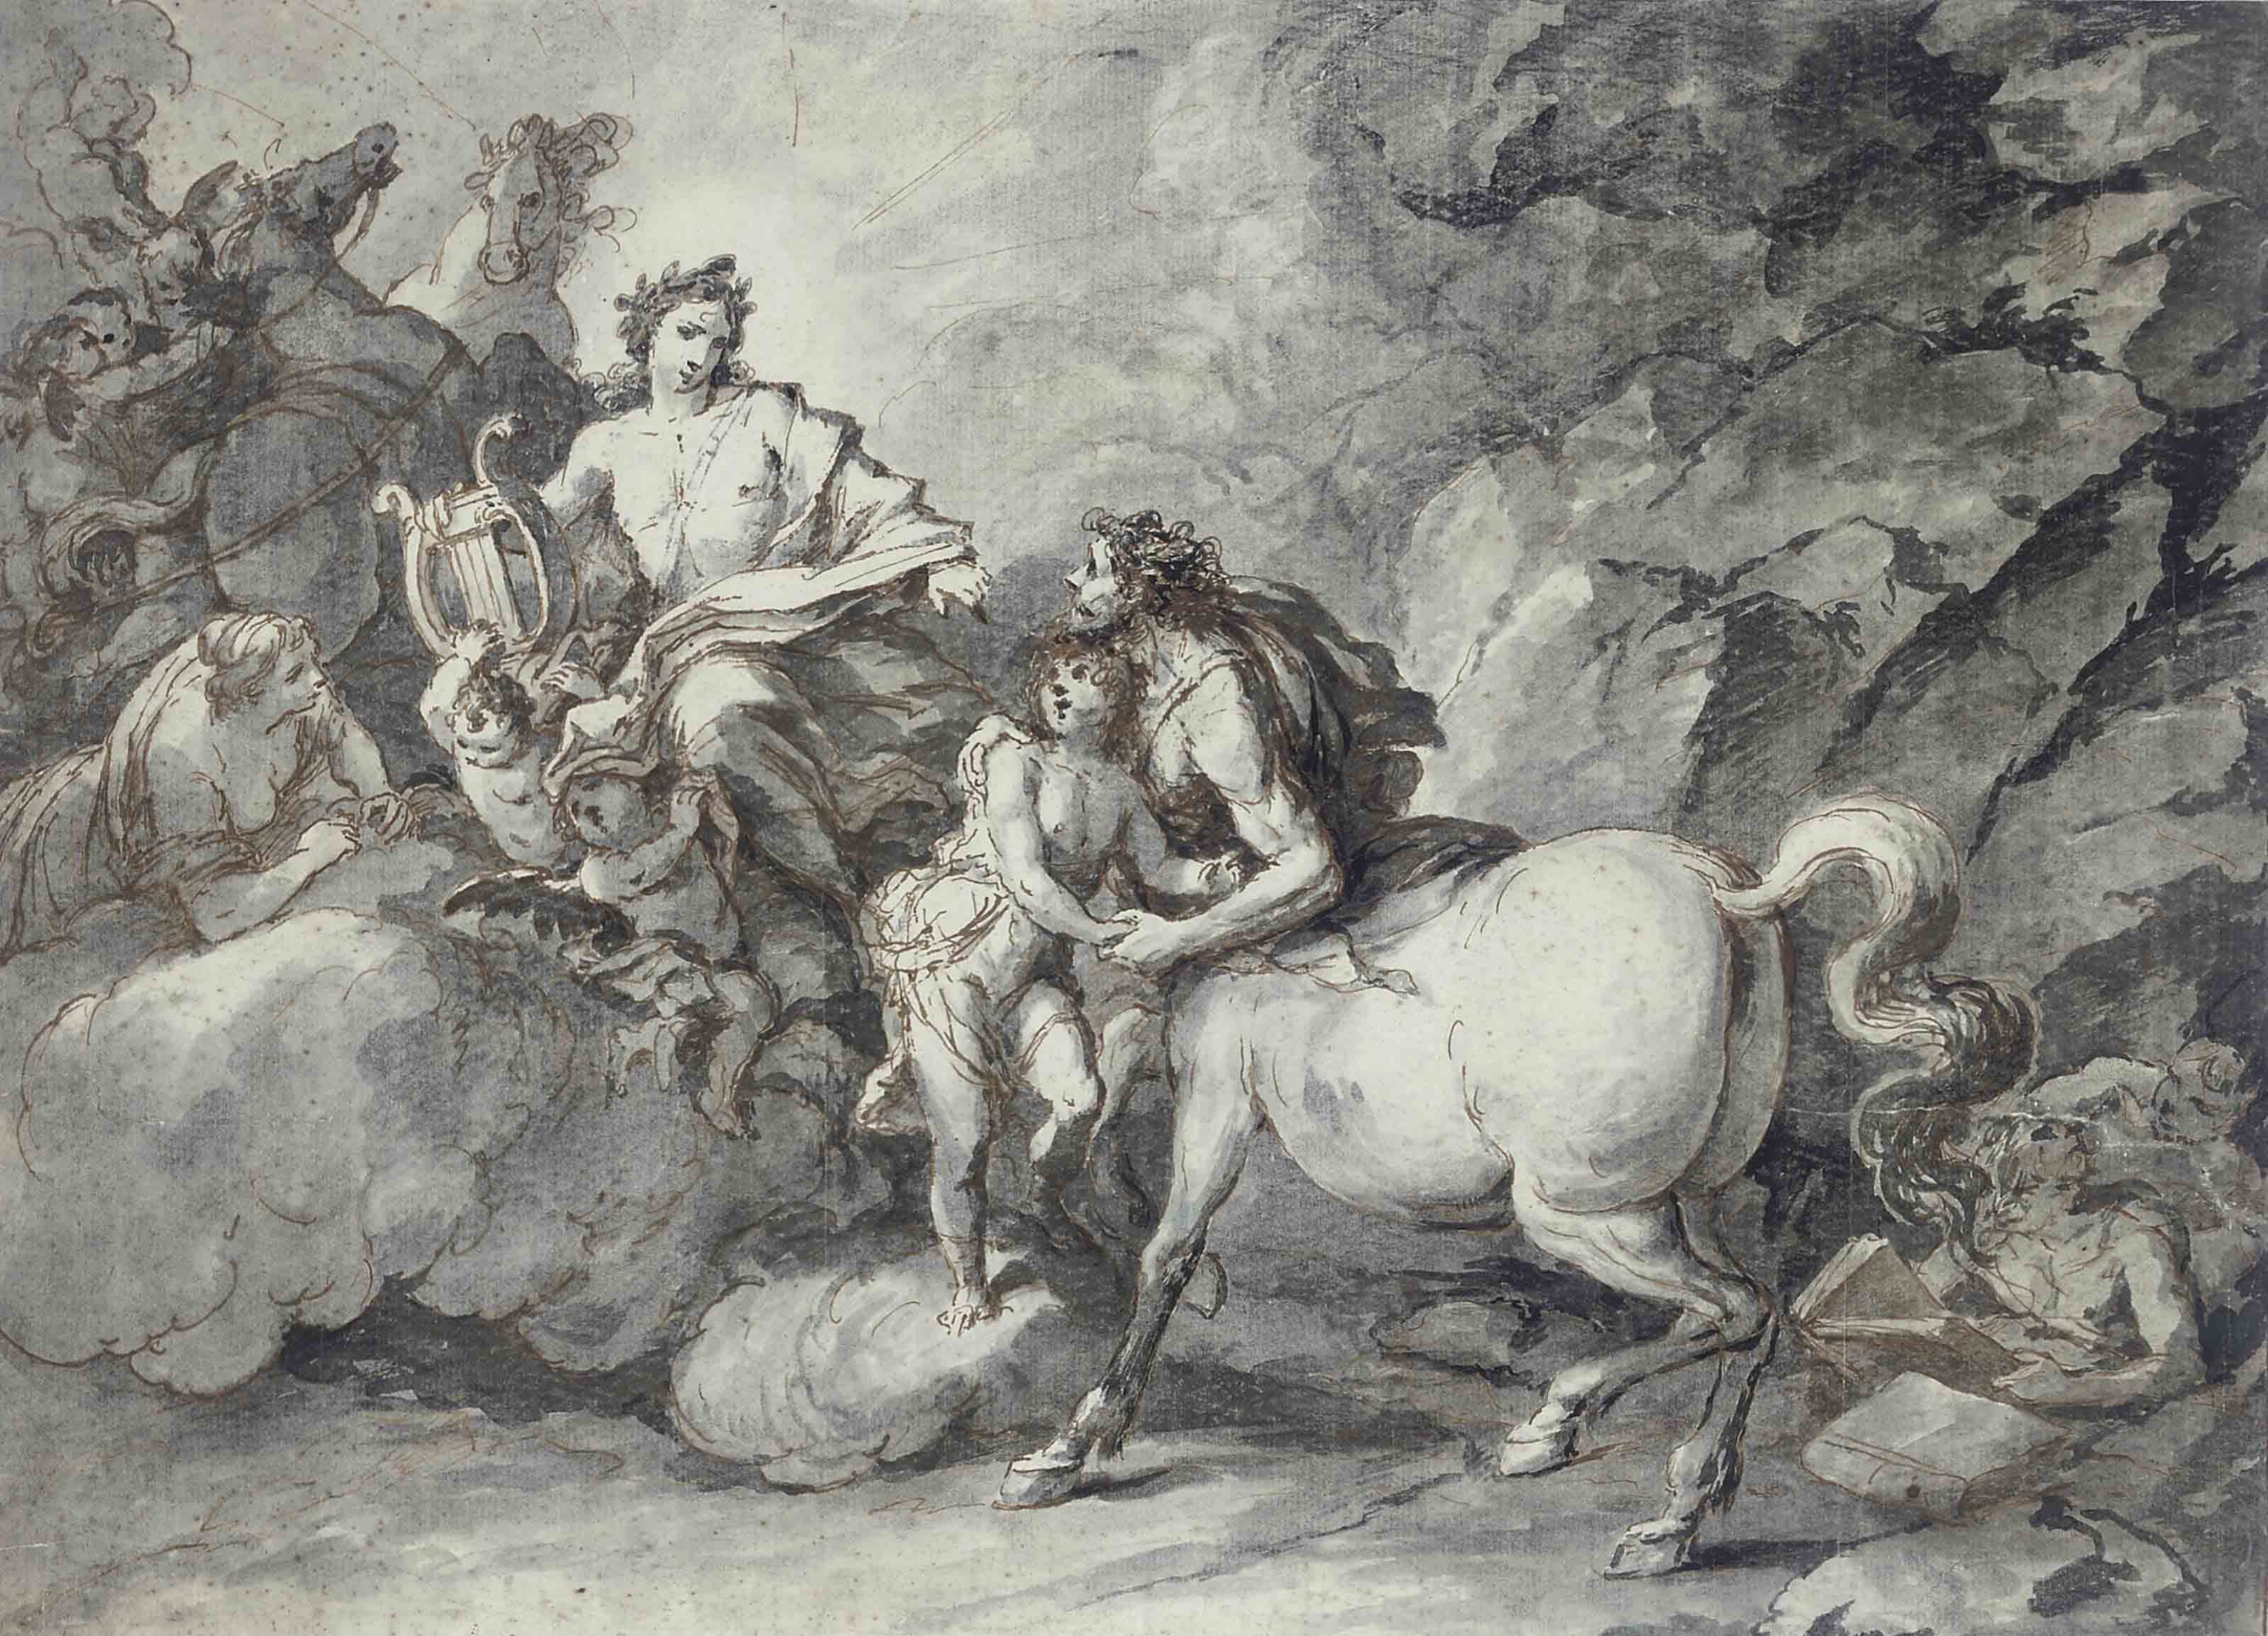 Apollo handing the infant Asklepios to the Centaur for education